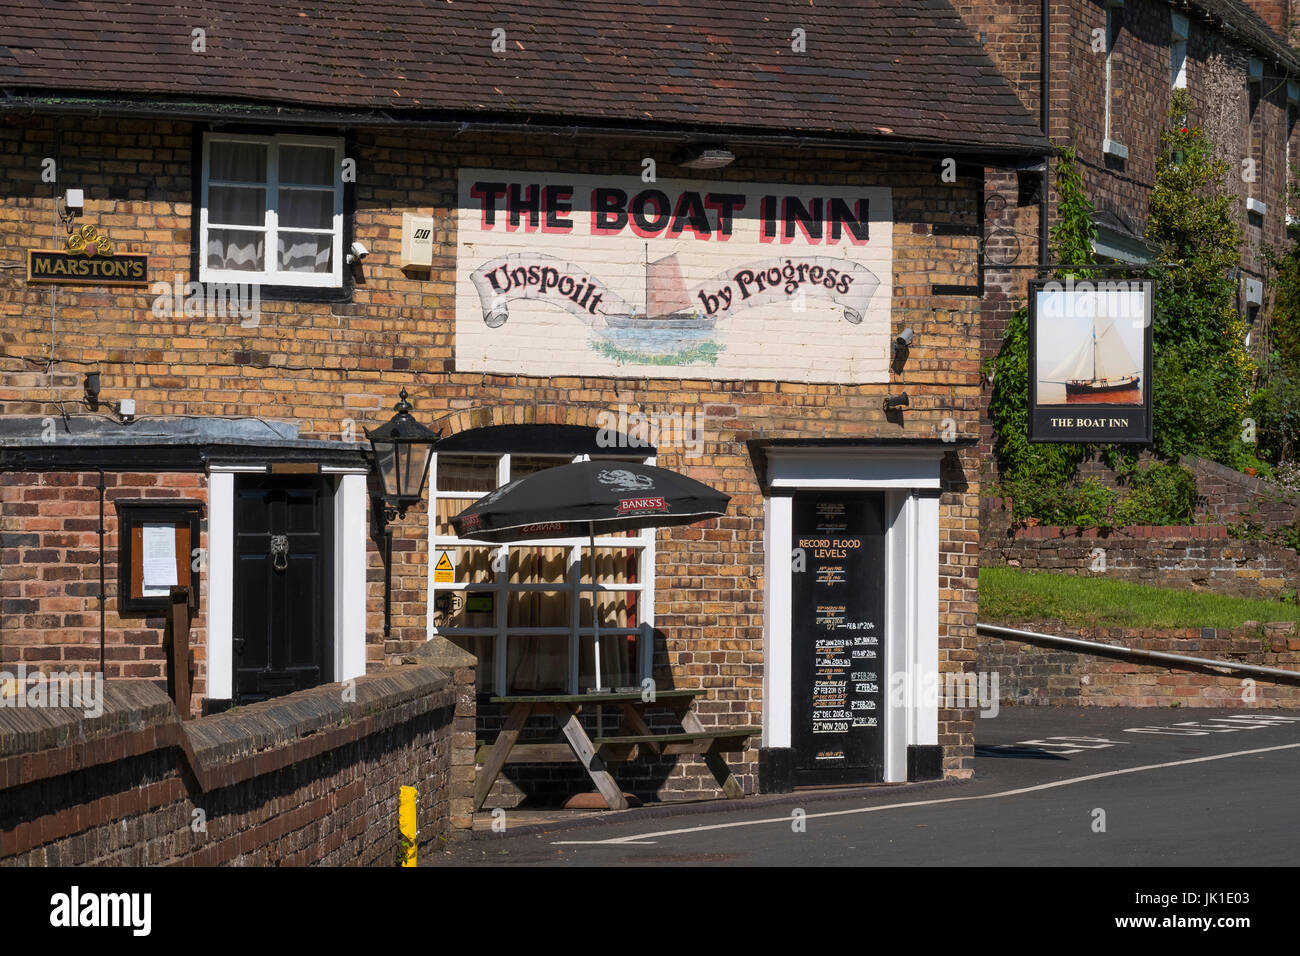 The Boat Inn at Coalport, near Ironbridge, Shropshire, England, UK - Stock Image